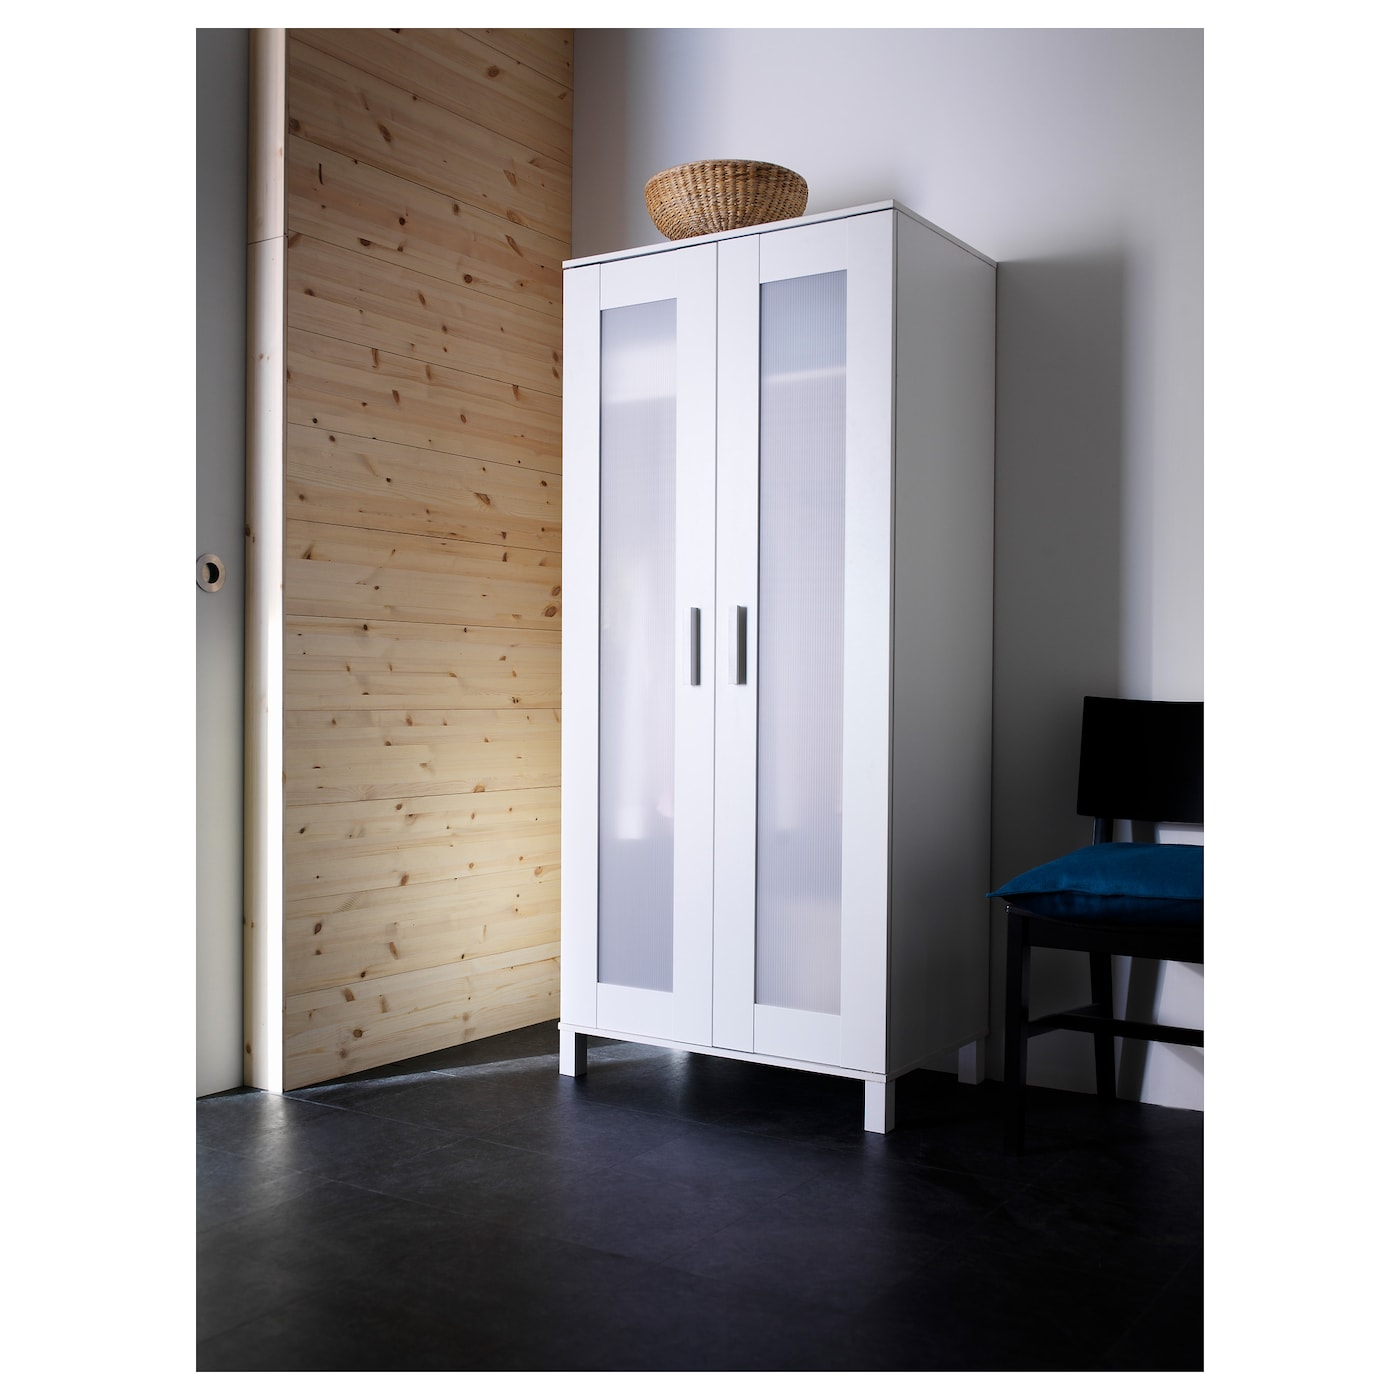 Charmant IKEA ANEBODA Wardrobe Adjustable Hinges Ensure That The Doors Hang Straight.